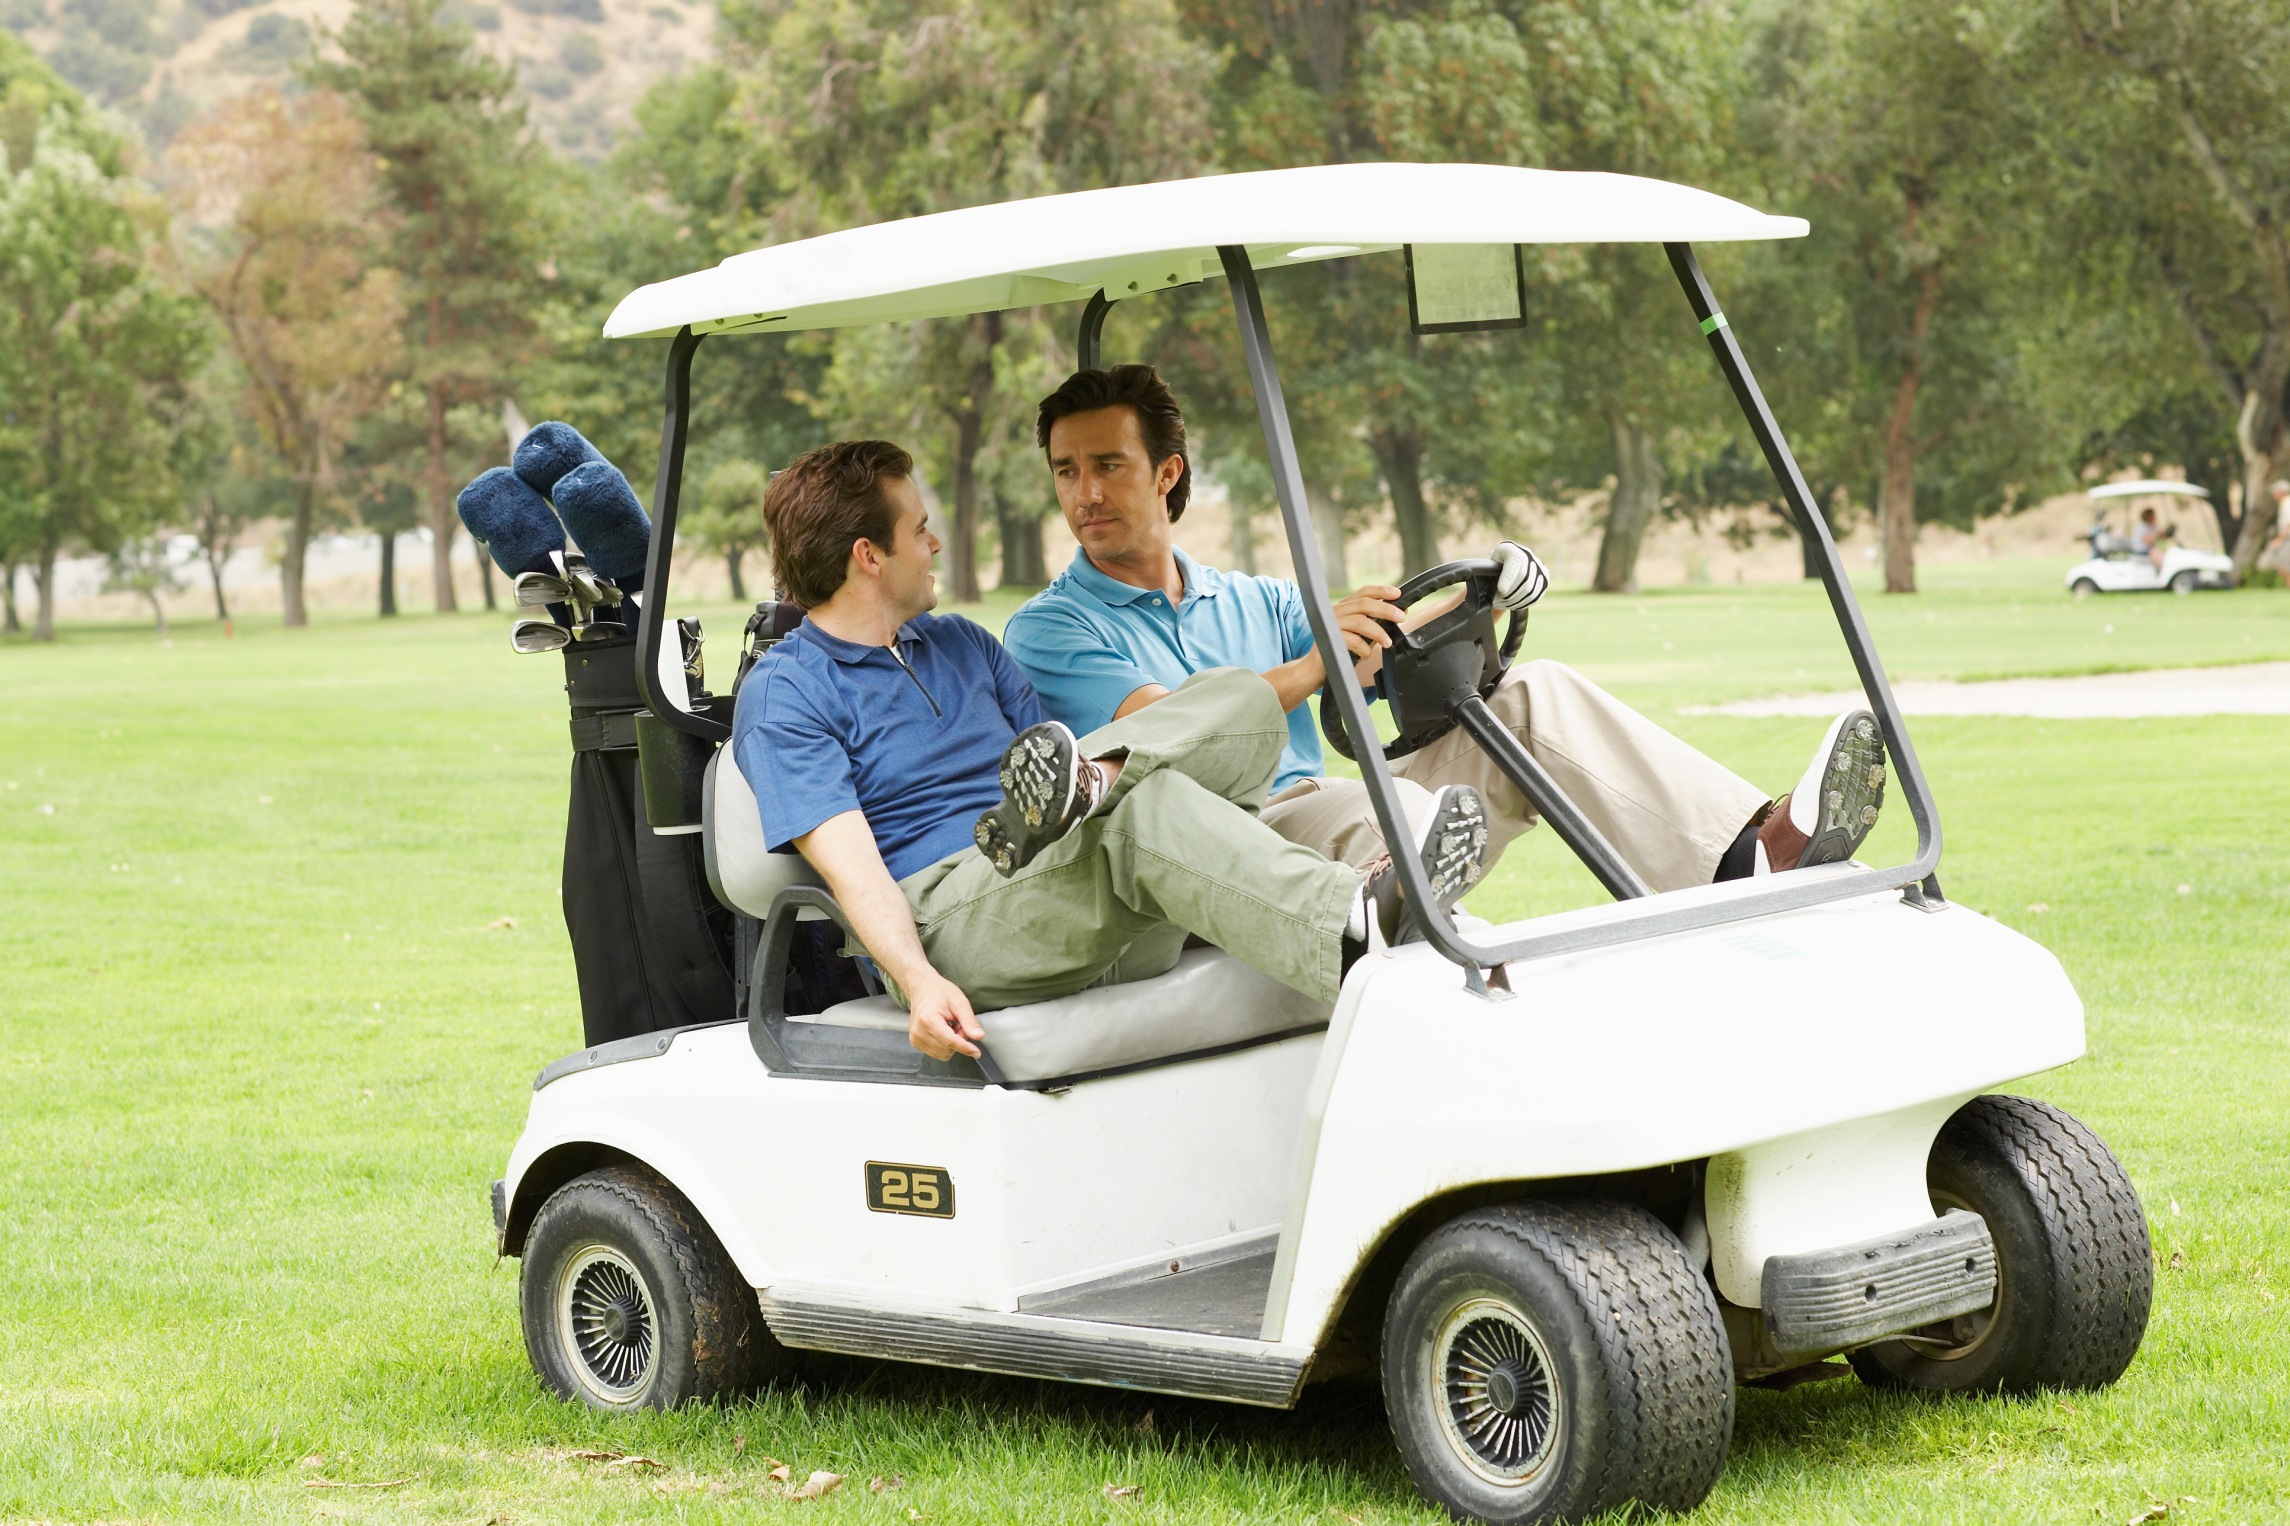 Ruff And Tuff Golf Cart Wiring Diagram from static-resources.imageservice.cloud